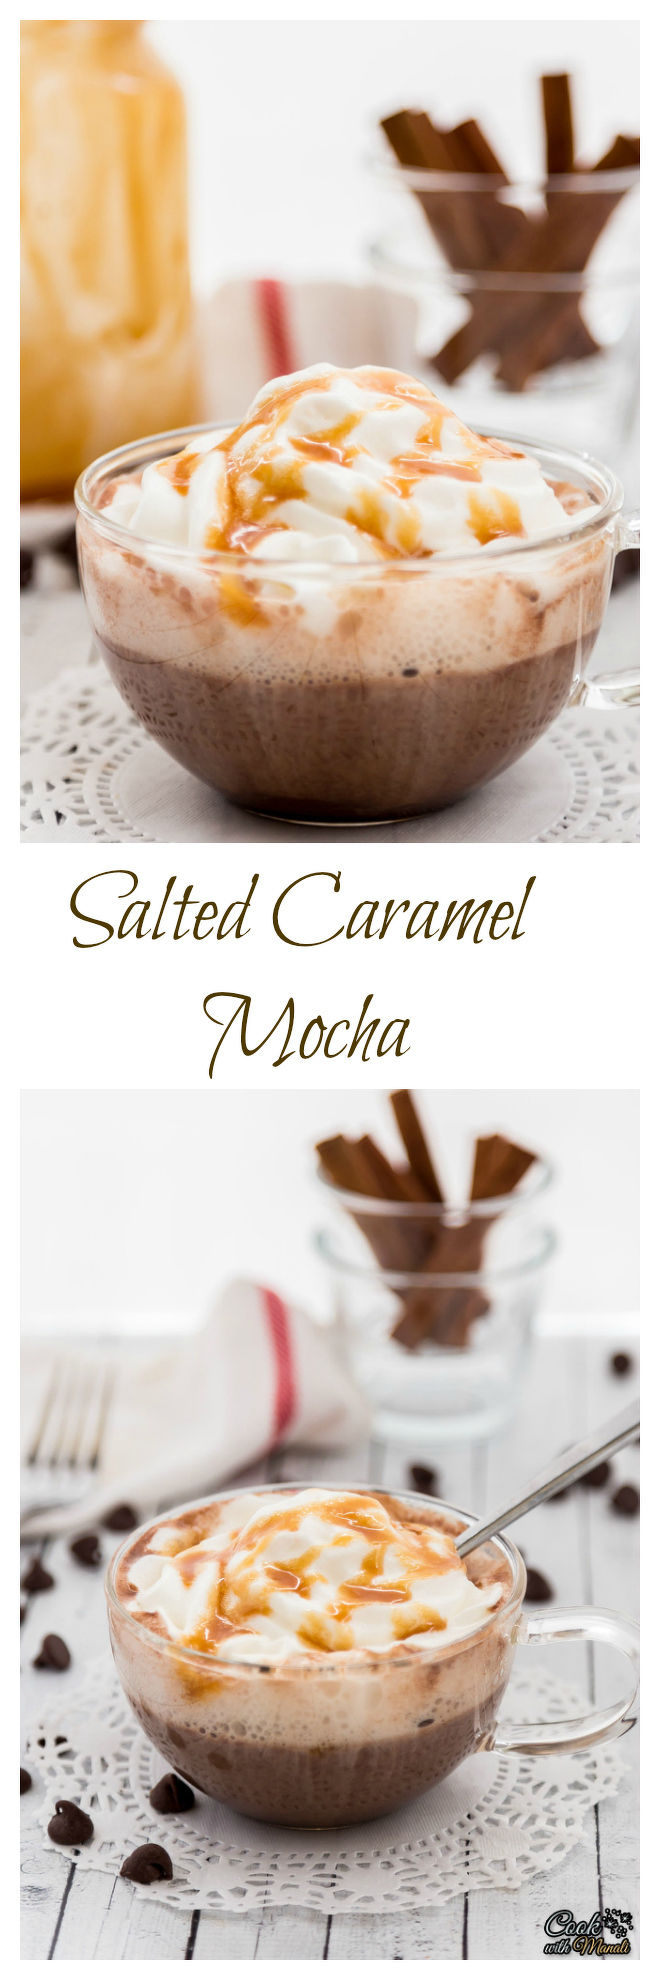 Salted Caramel Mocha Collage-nocwm